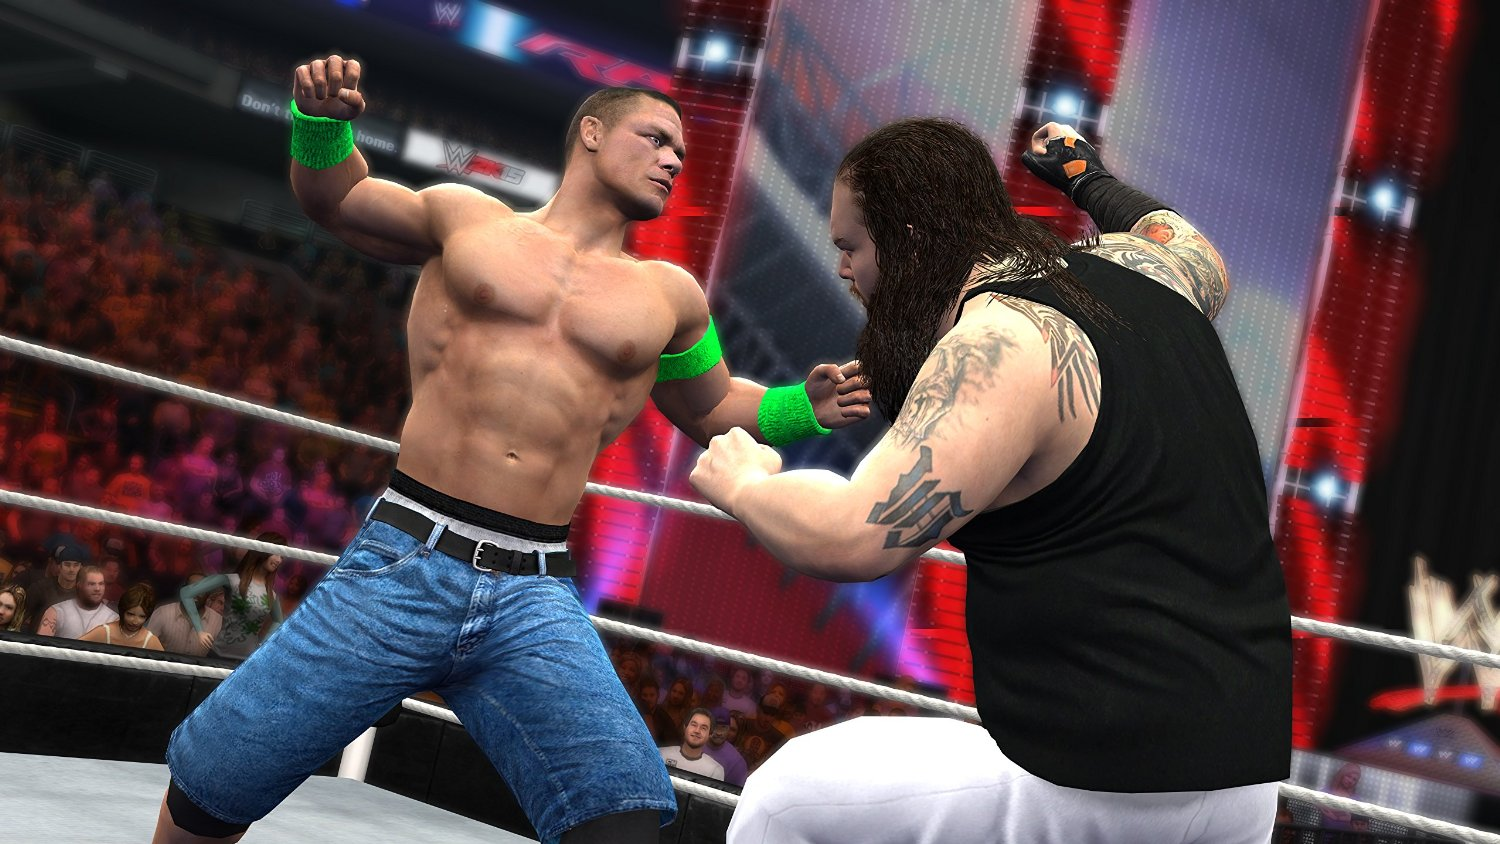 WWE 2k 15 HIGHLY COMPRESSED free download pc game full